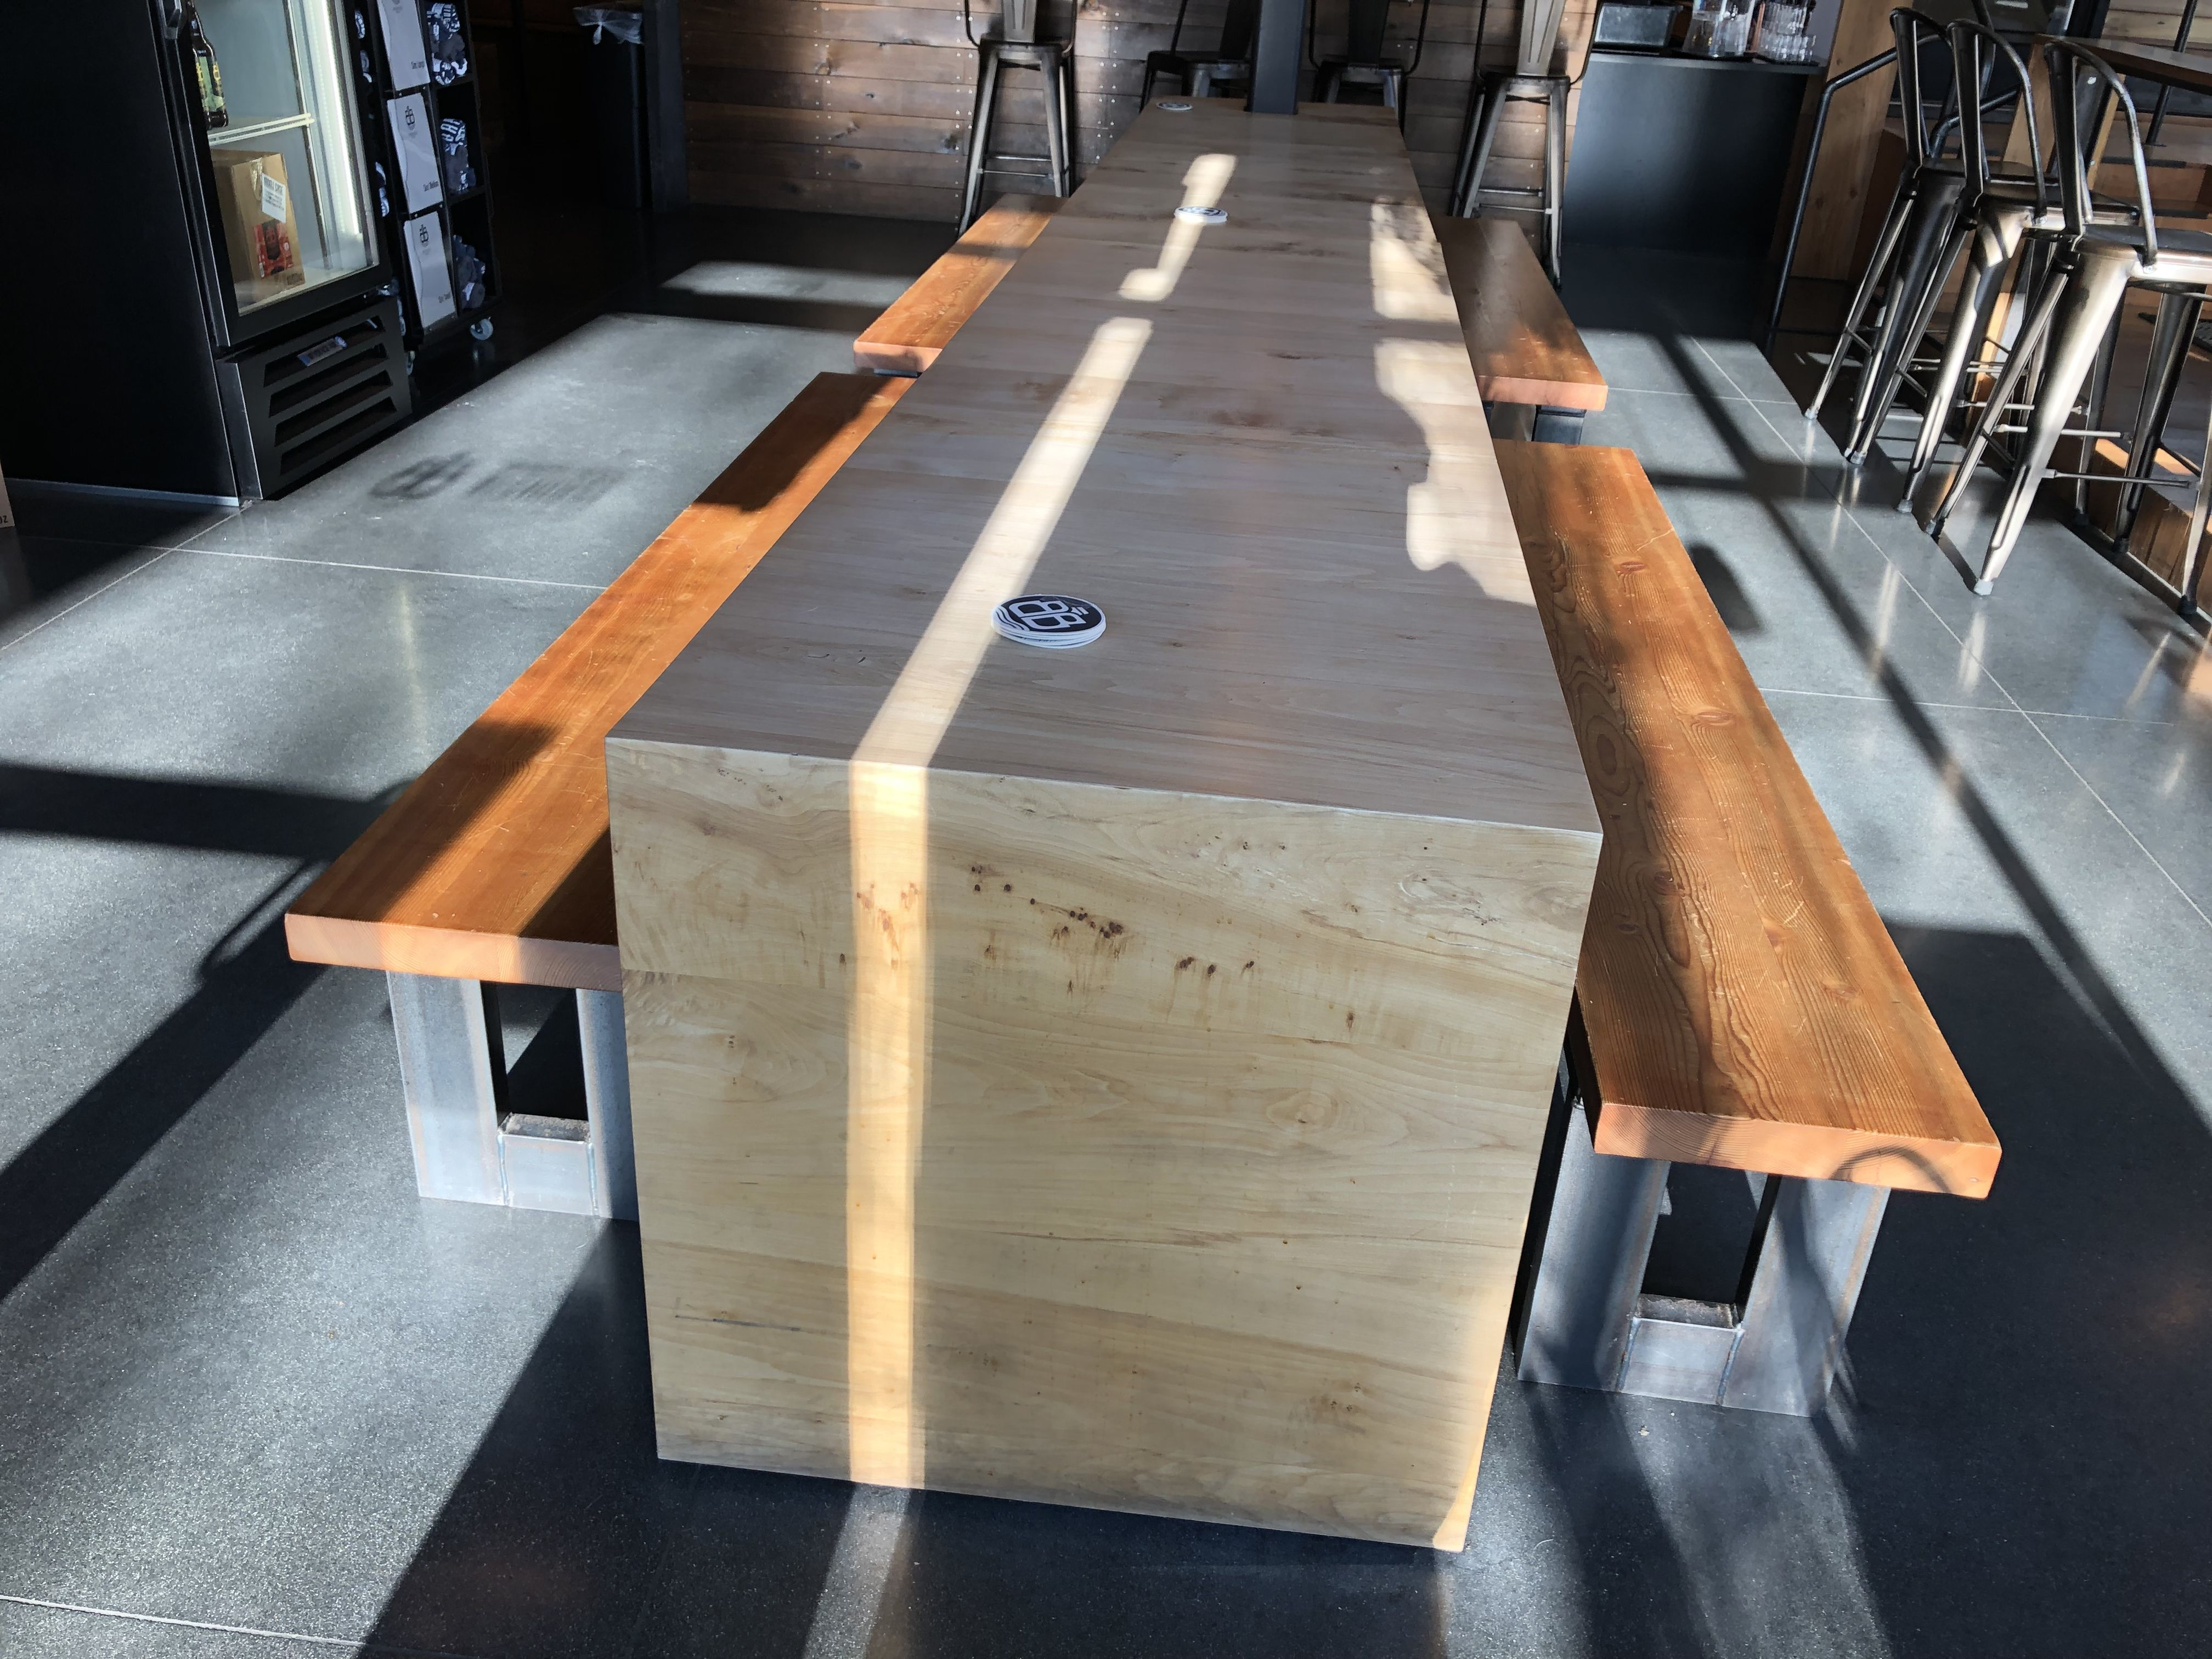 24 To 26 Inch Wide Table With Benches Right Where They Would Need To Be It S Only 5 Feet Wide Bar Design Home Decor Table 24 inch wide table